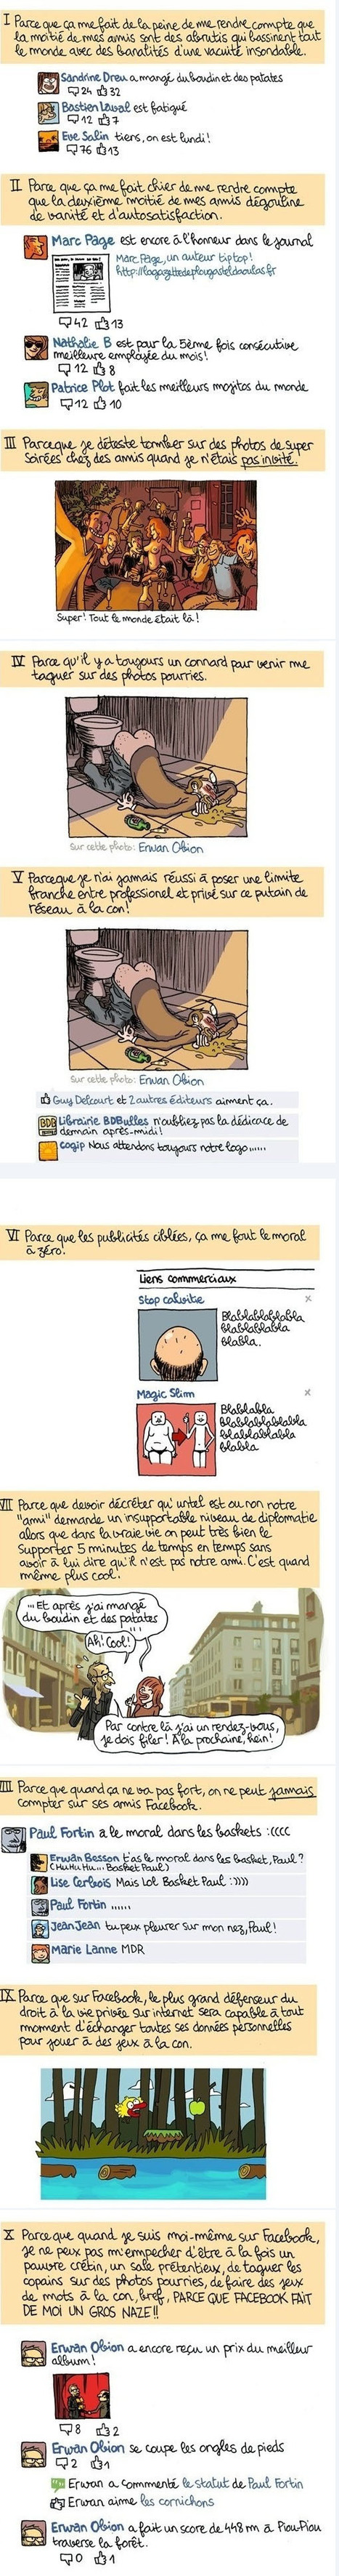 [Novembre 2011] 10 raisons de quitter Facebook | Ca m'interpelle... | Scoop.it